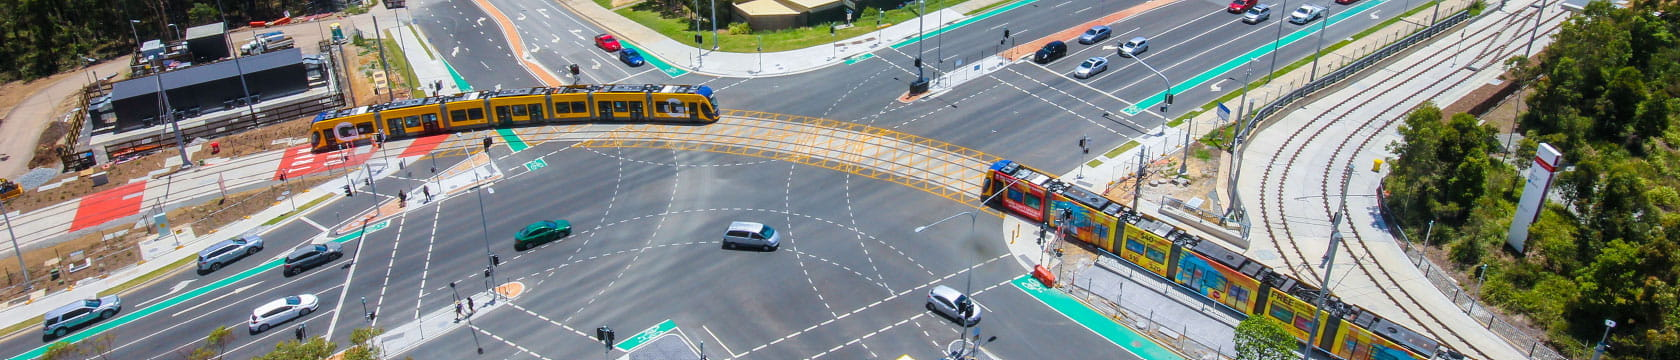 aerial shot of tram going through intersection